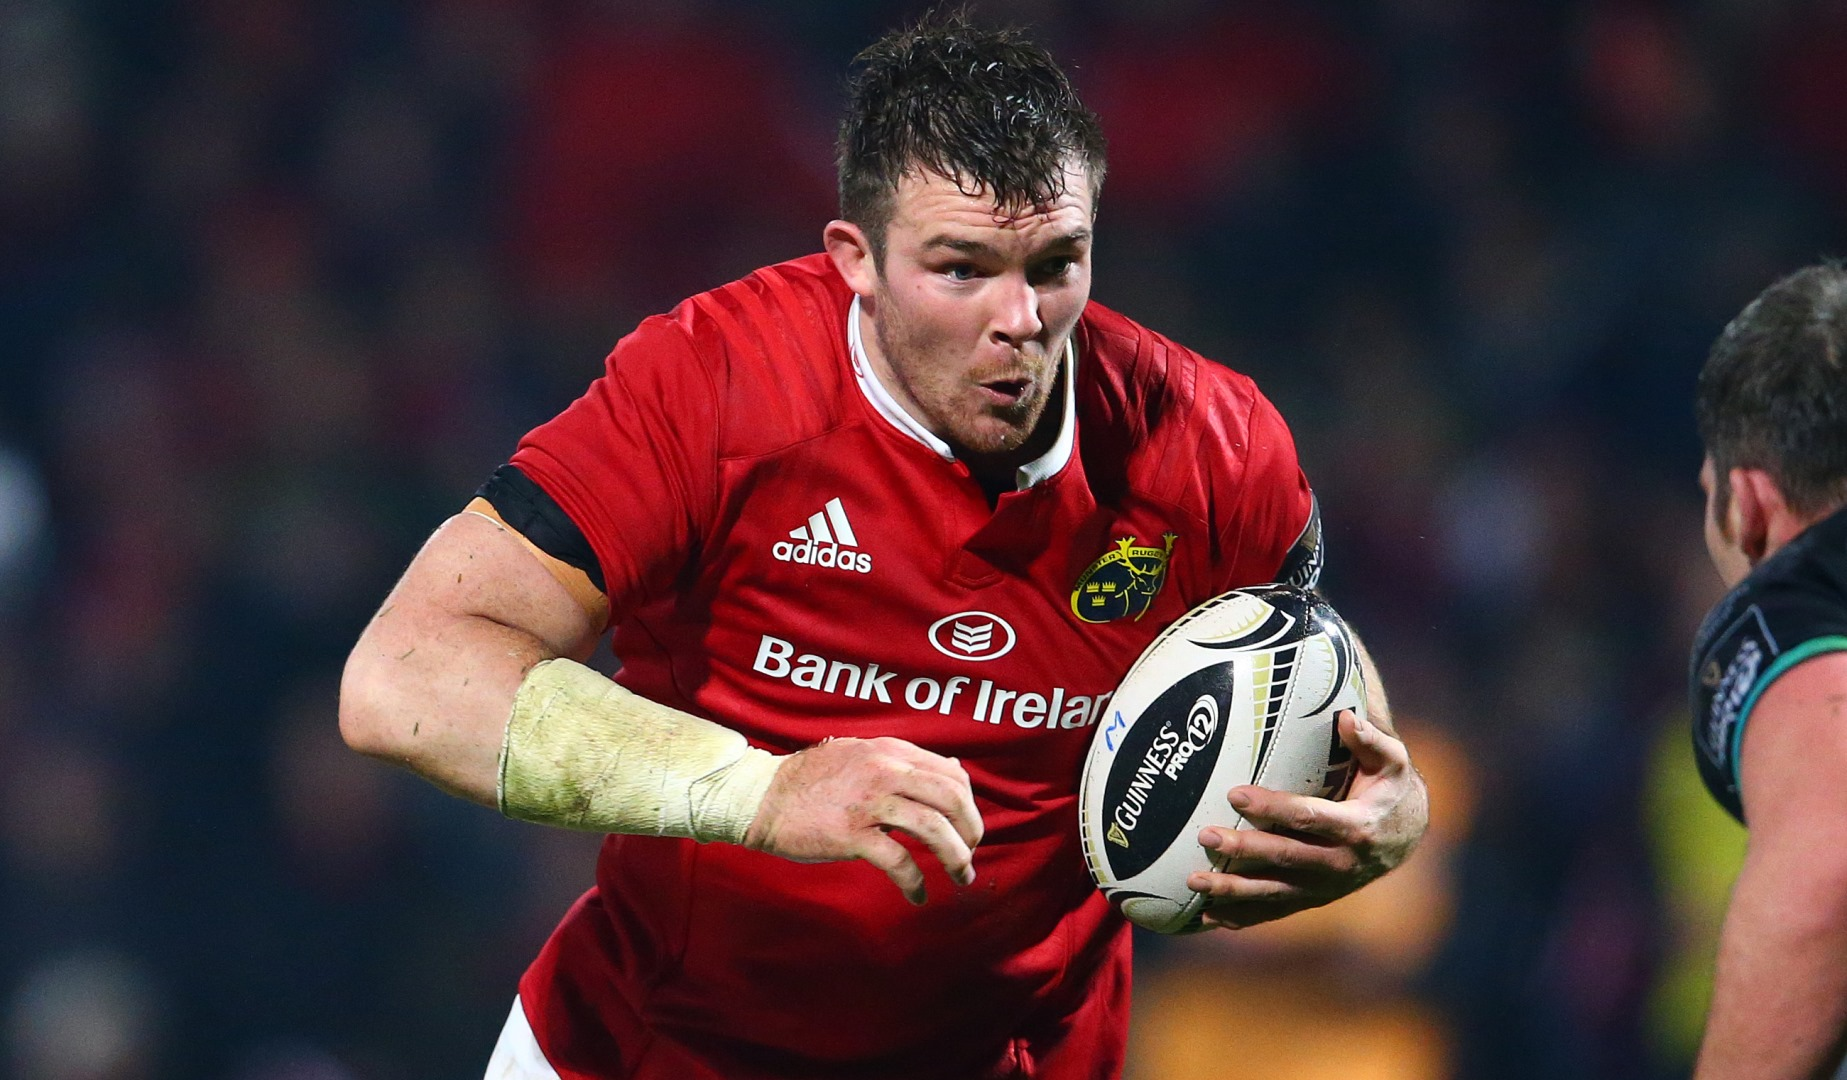 LionsWatch: O'Brien and O'Mahony impress in Guinness PRO12 as Anglo-Welsh Cup returns